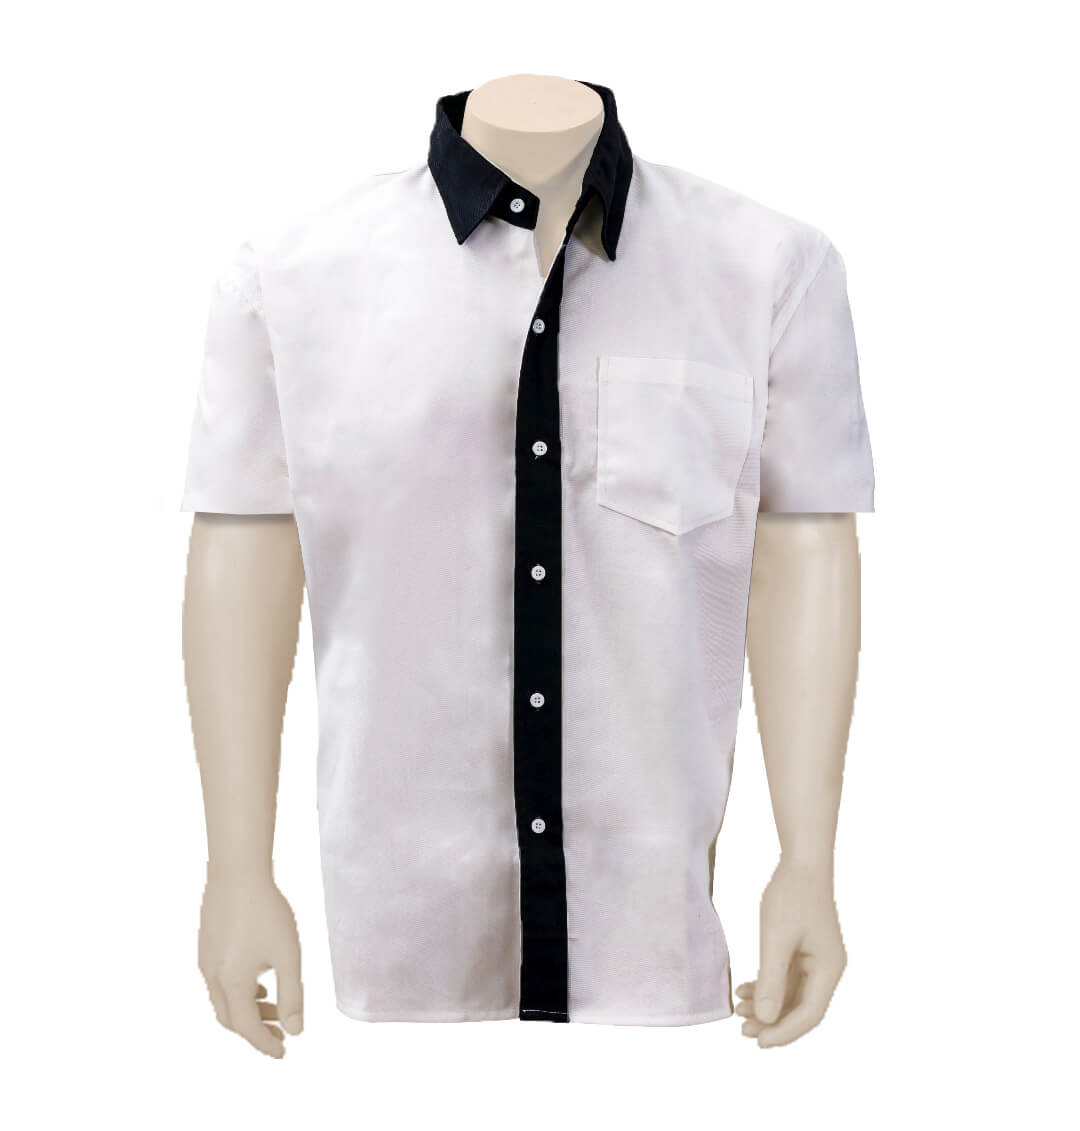 Inmate Shirt With Navy Trim